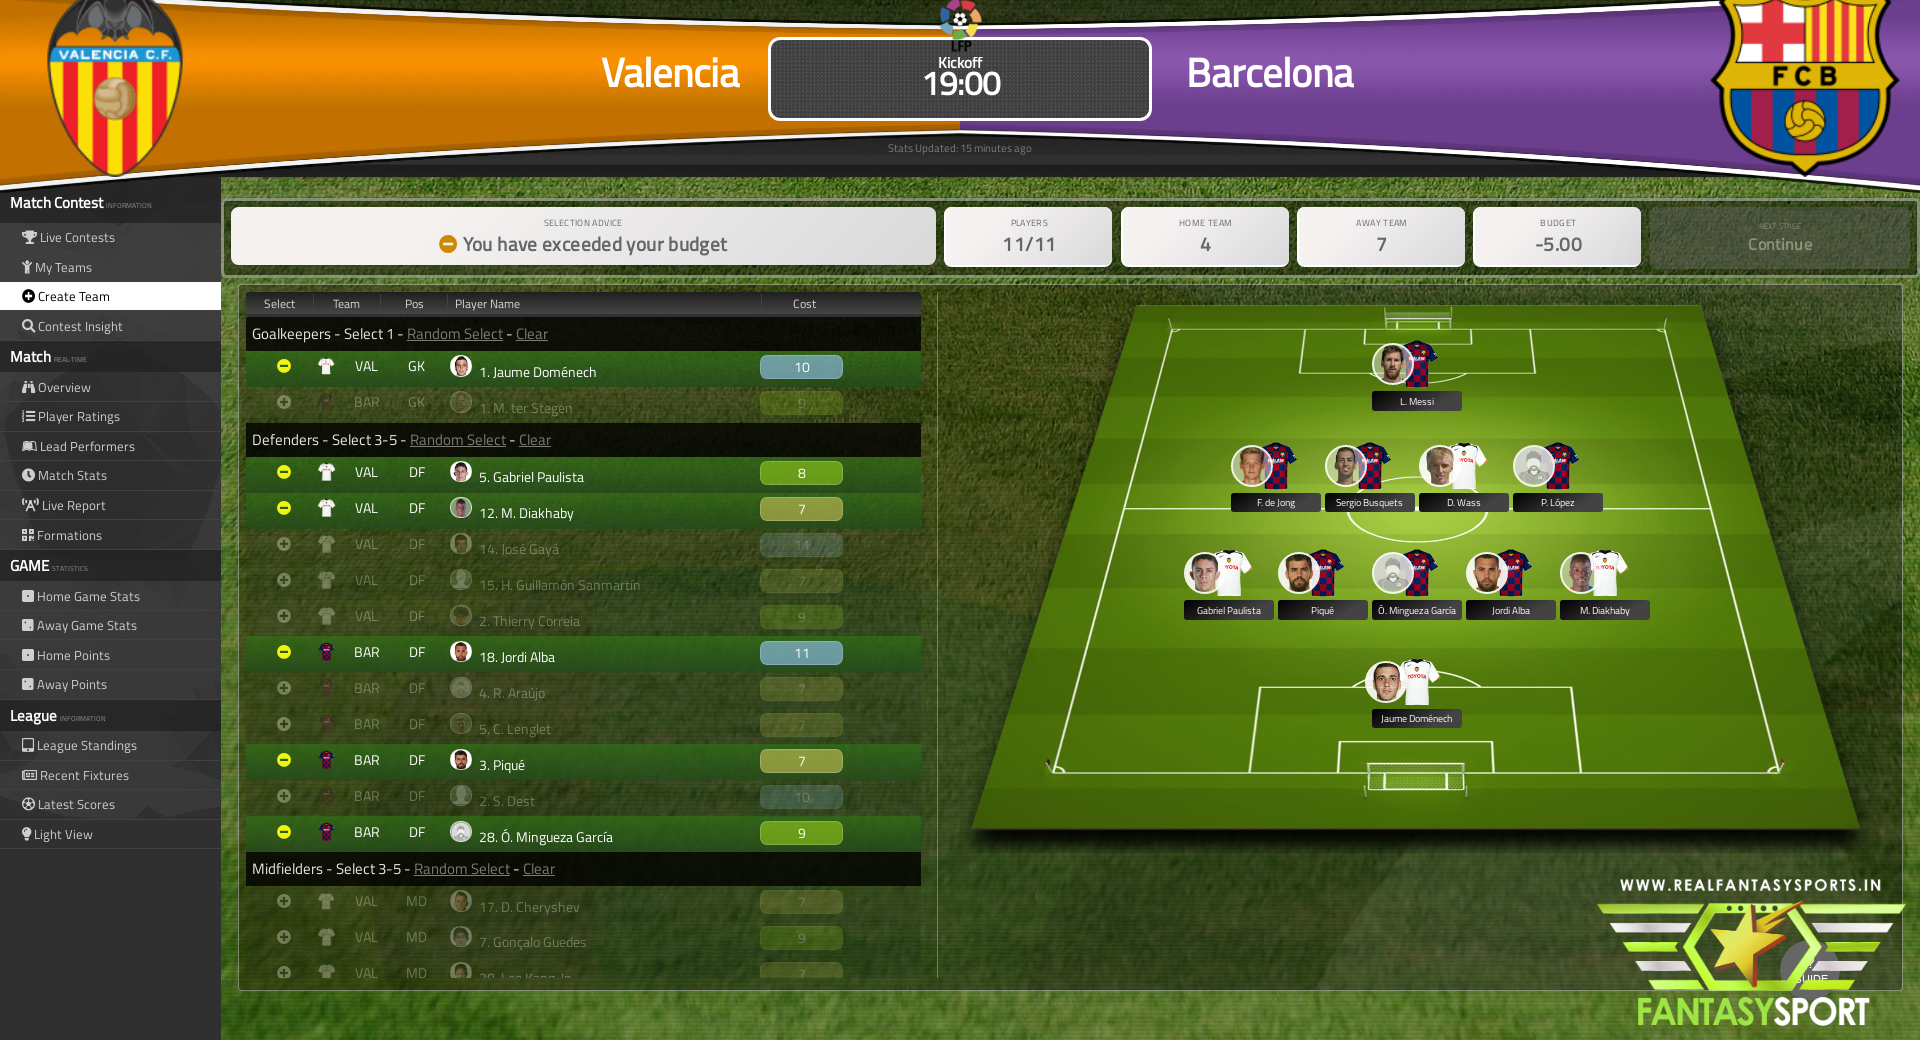 Fantasy Football Valencia Vs Barcelona